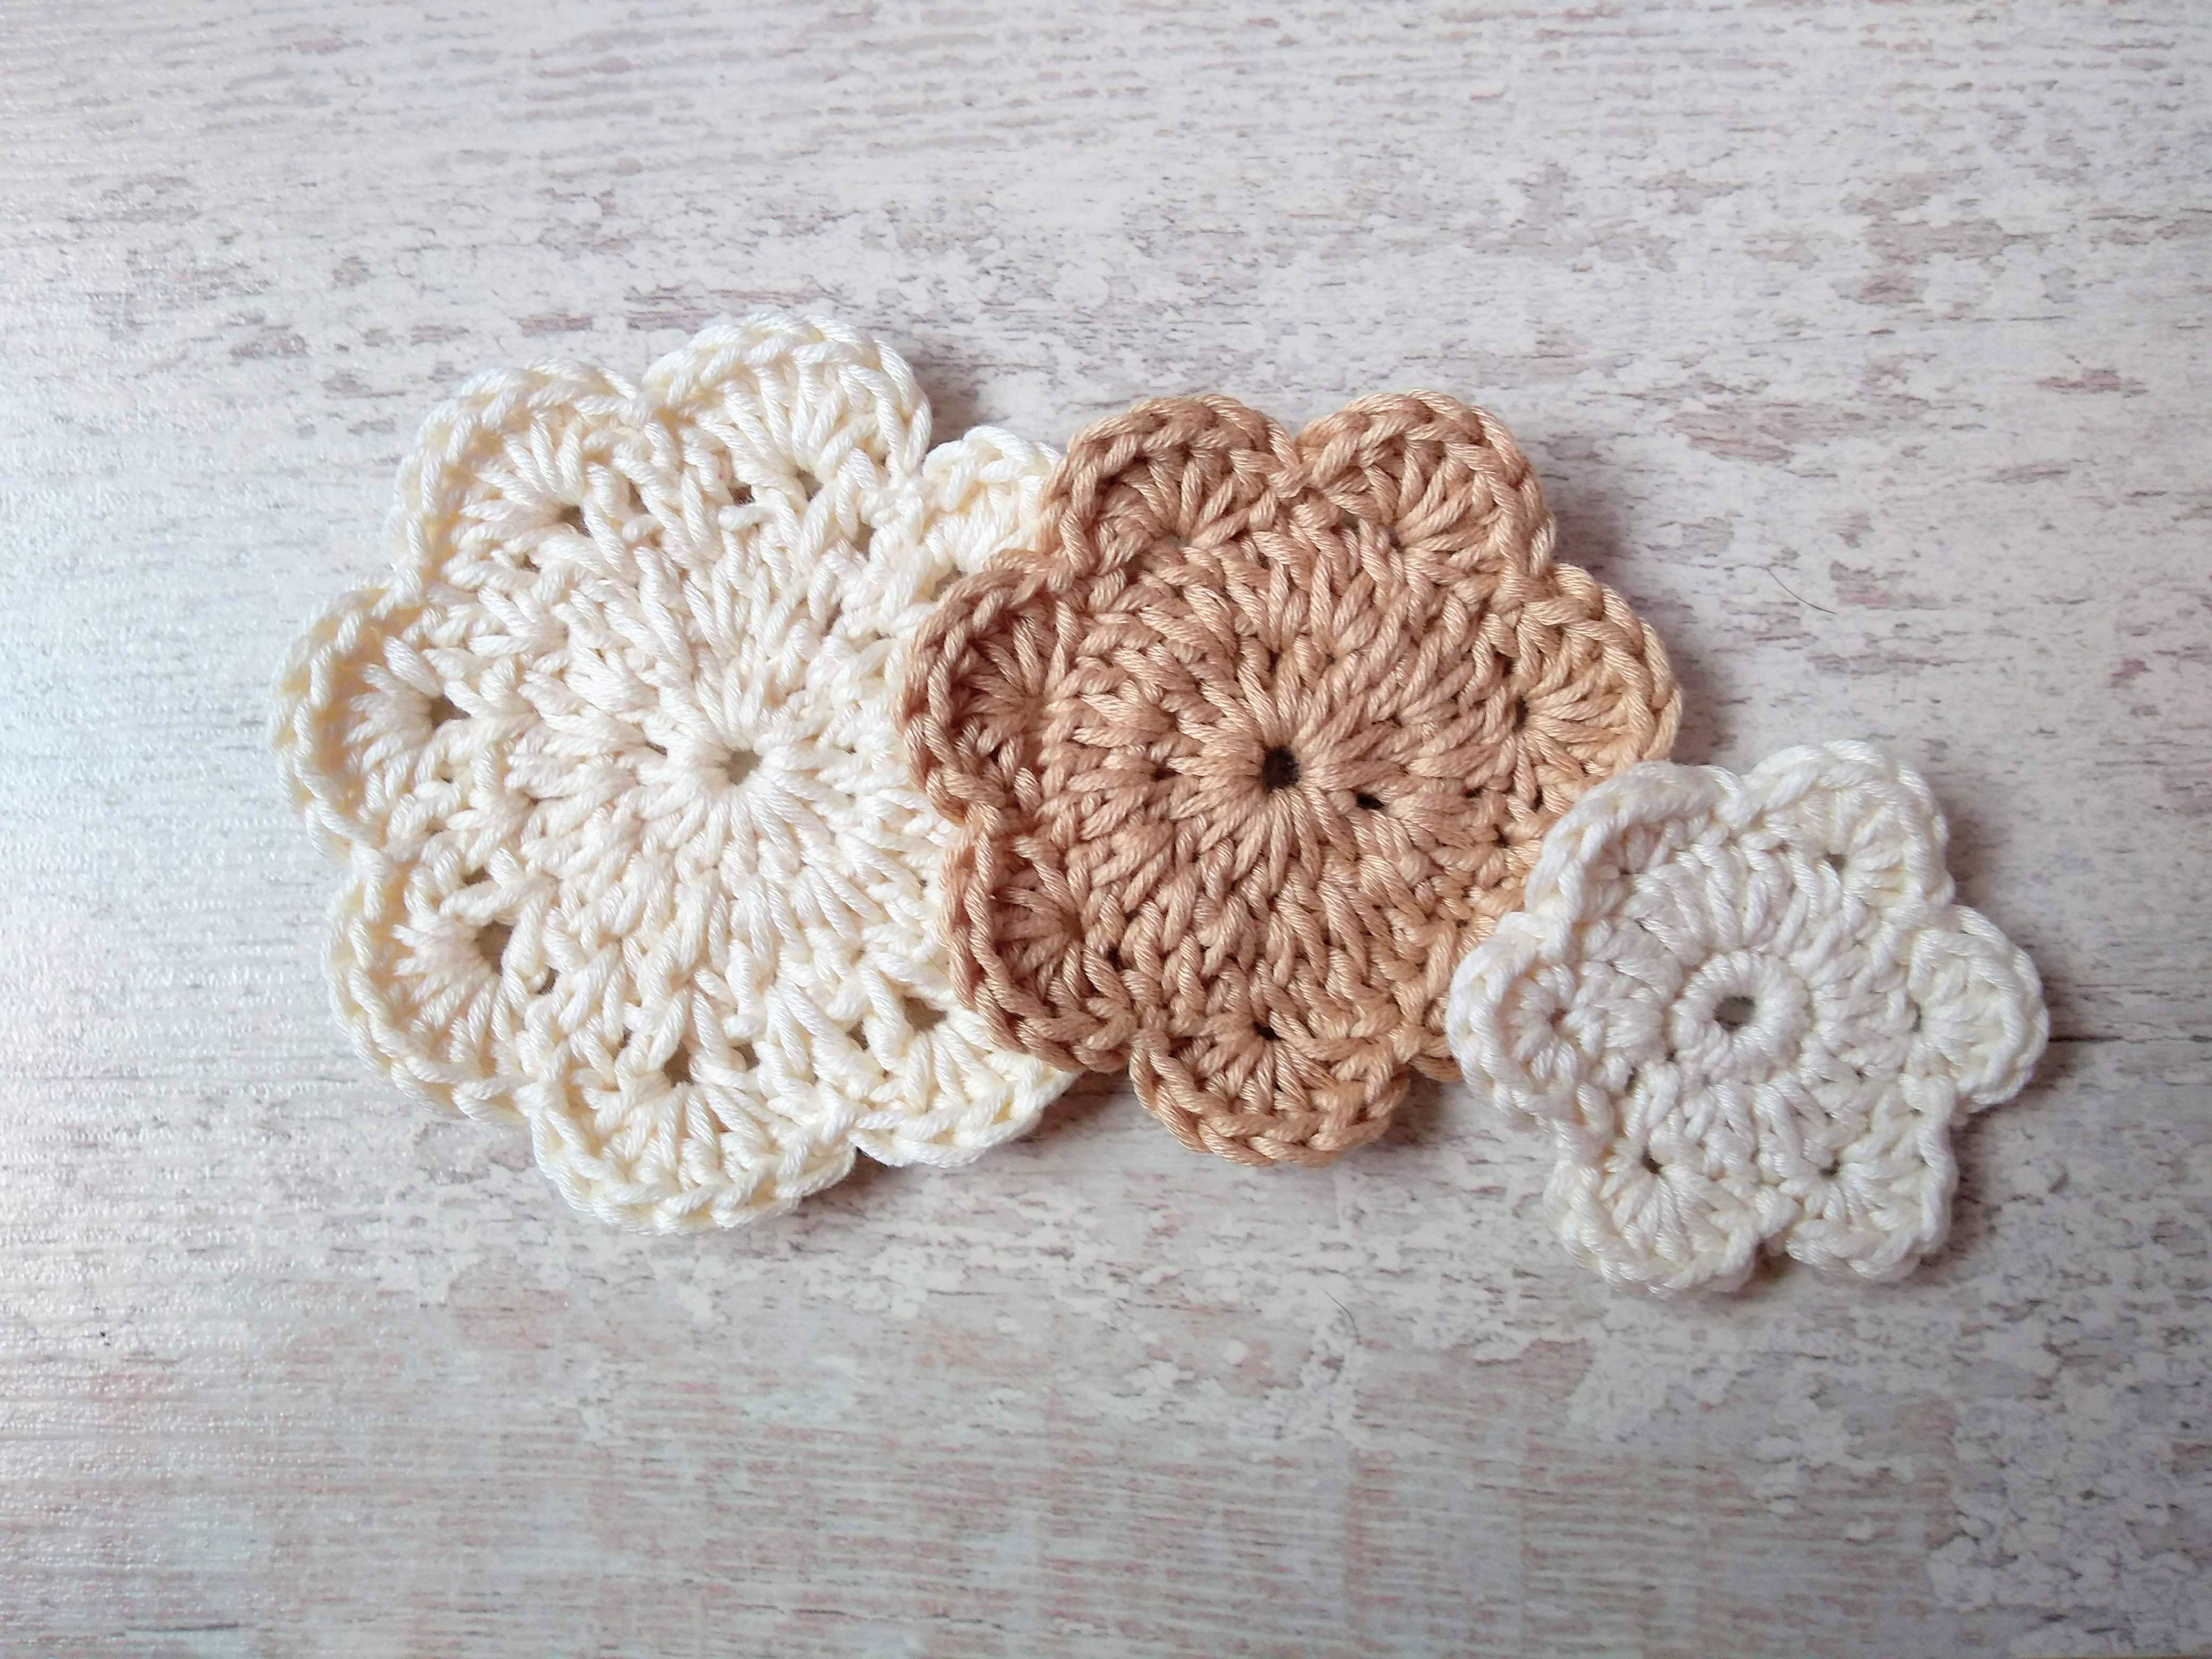 friendly scrubbies pads cotton cleansing pure remover eco waste reduce cleasing shaped make face neck flower skin